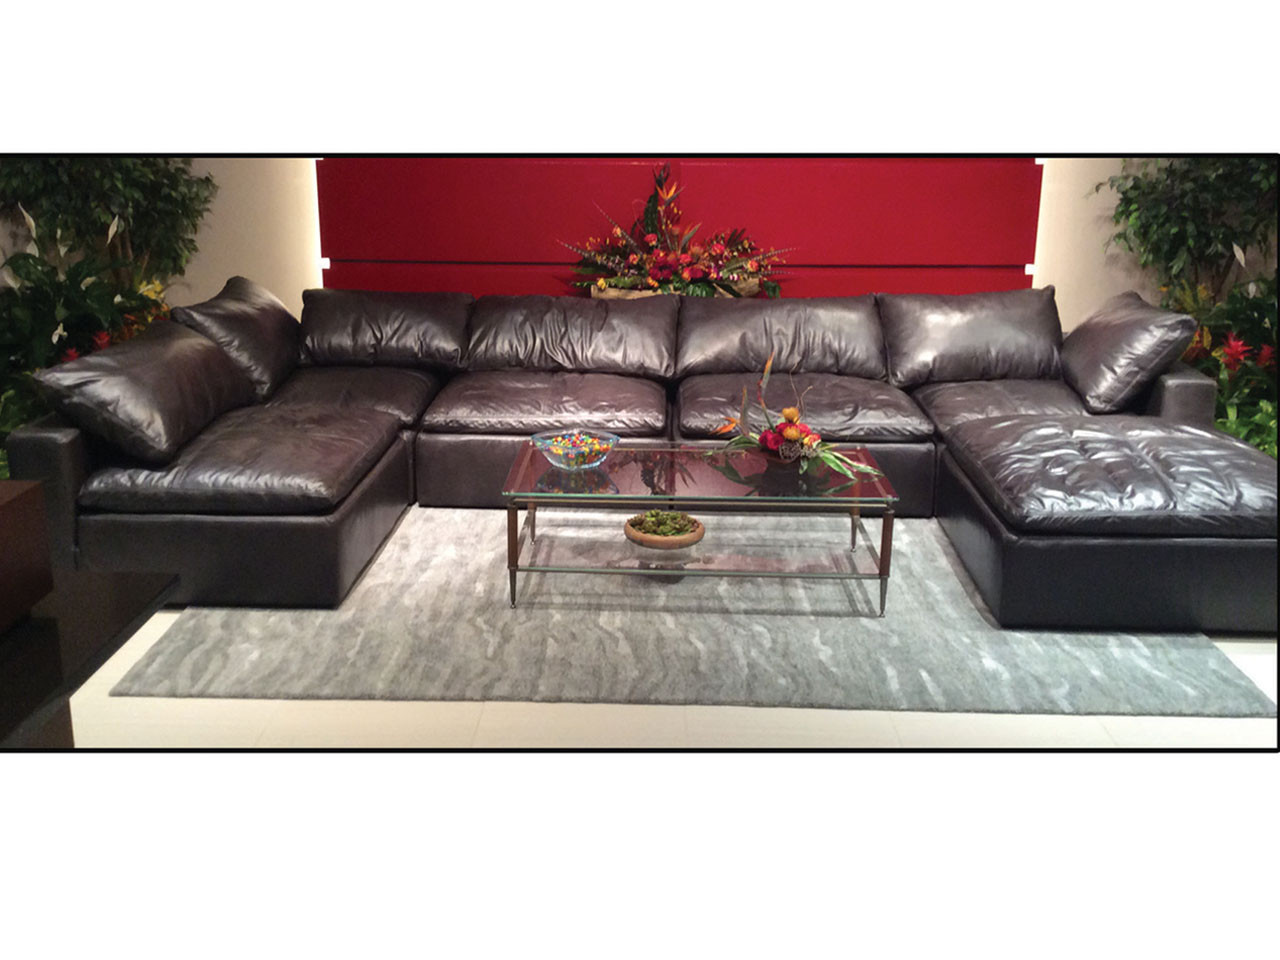 1440 Modular Leather Sectional